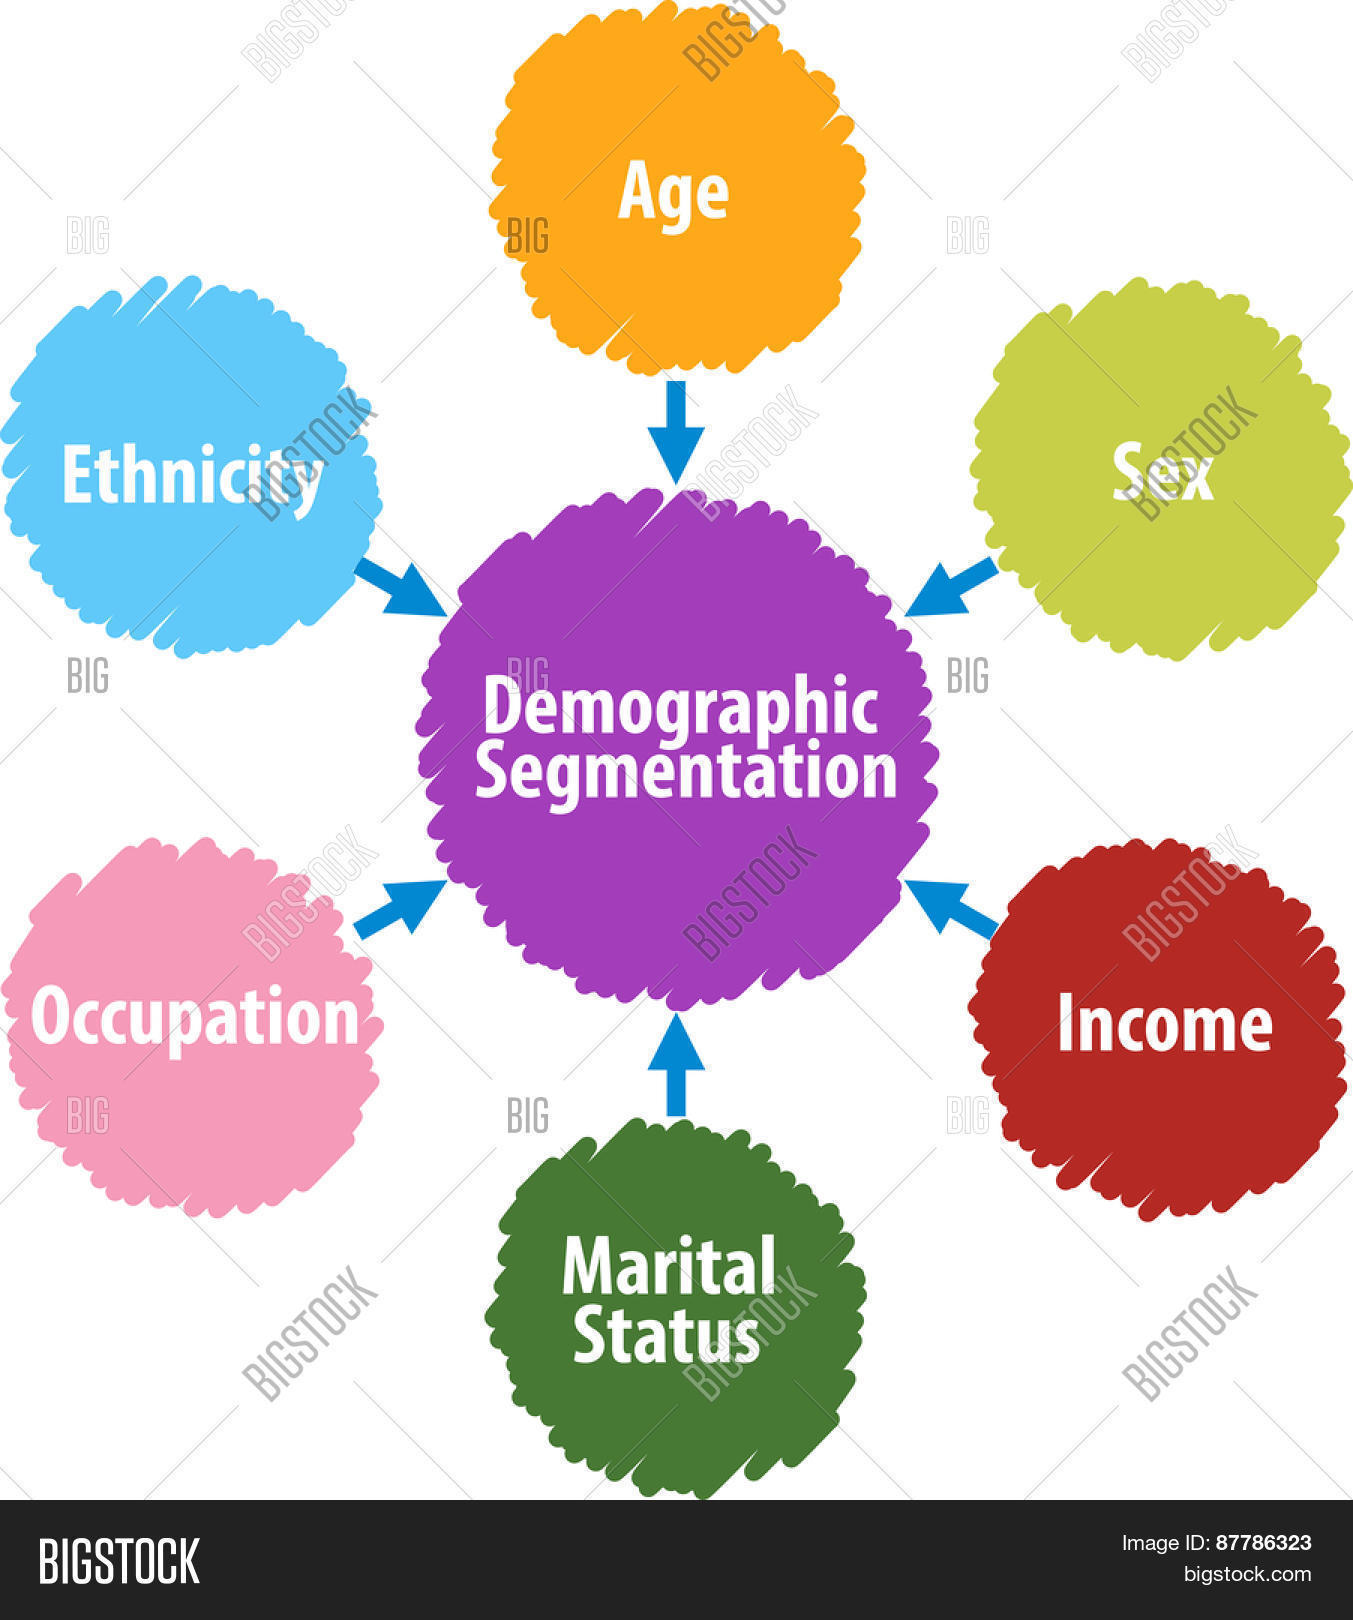 Demographic segmentation business diagram illustration Stock Photo ...